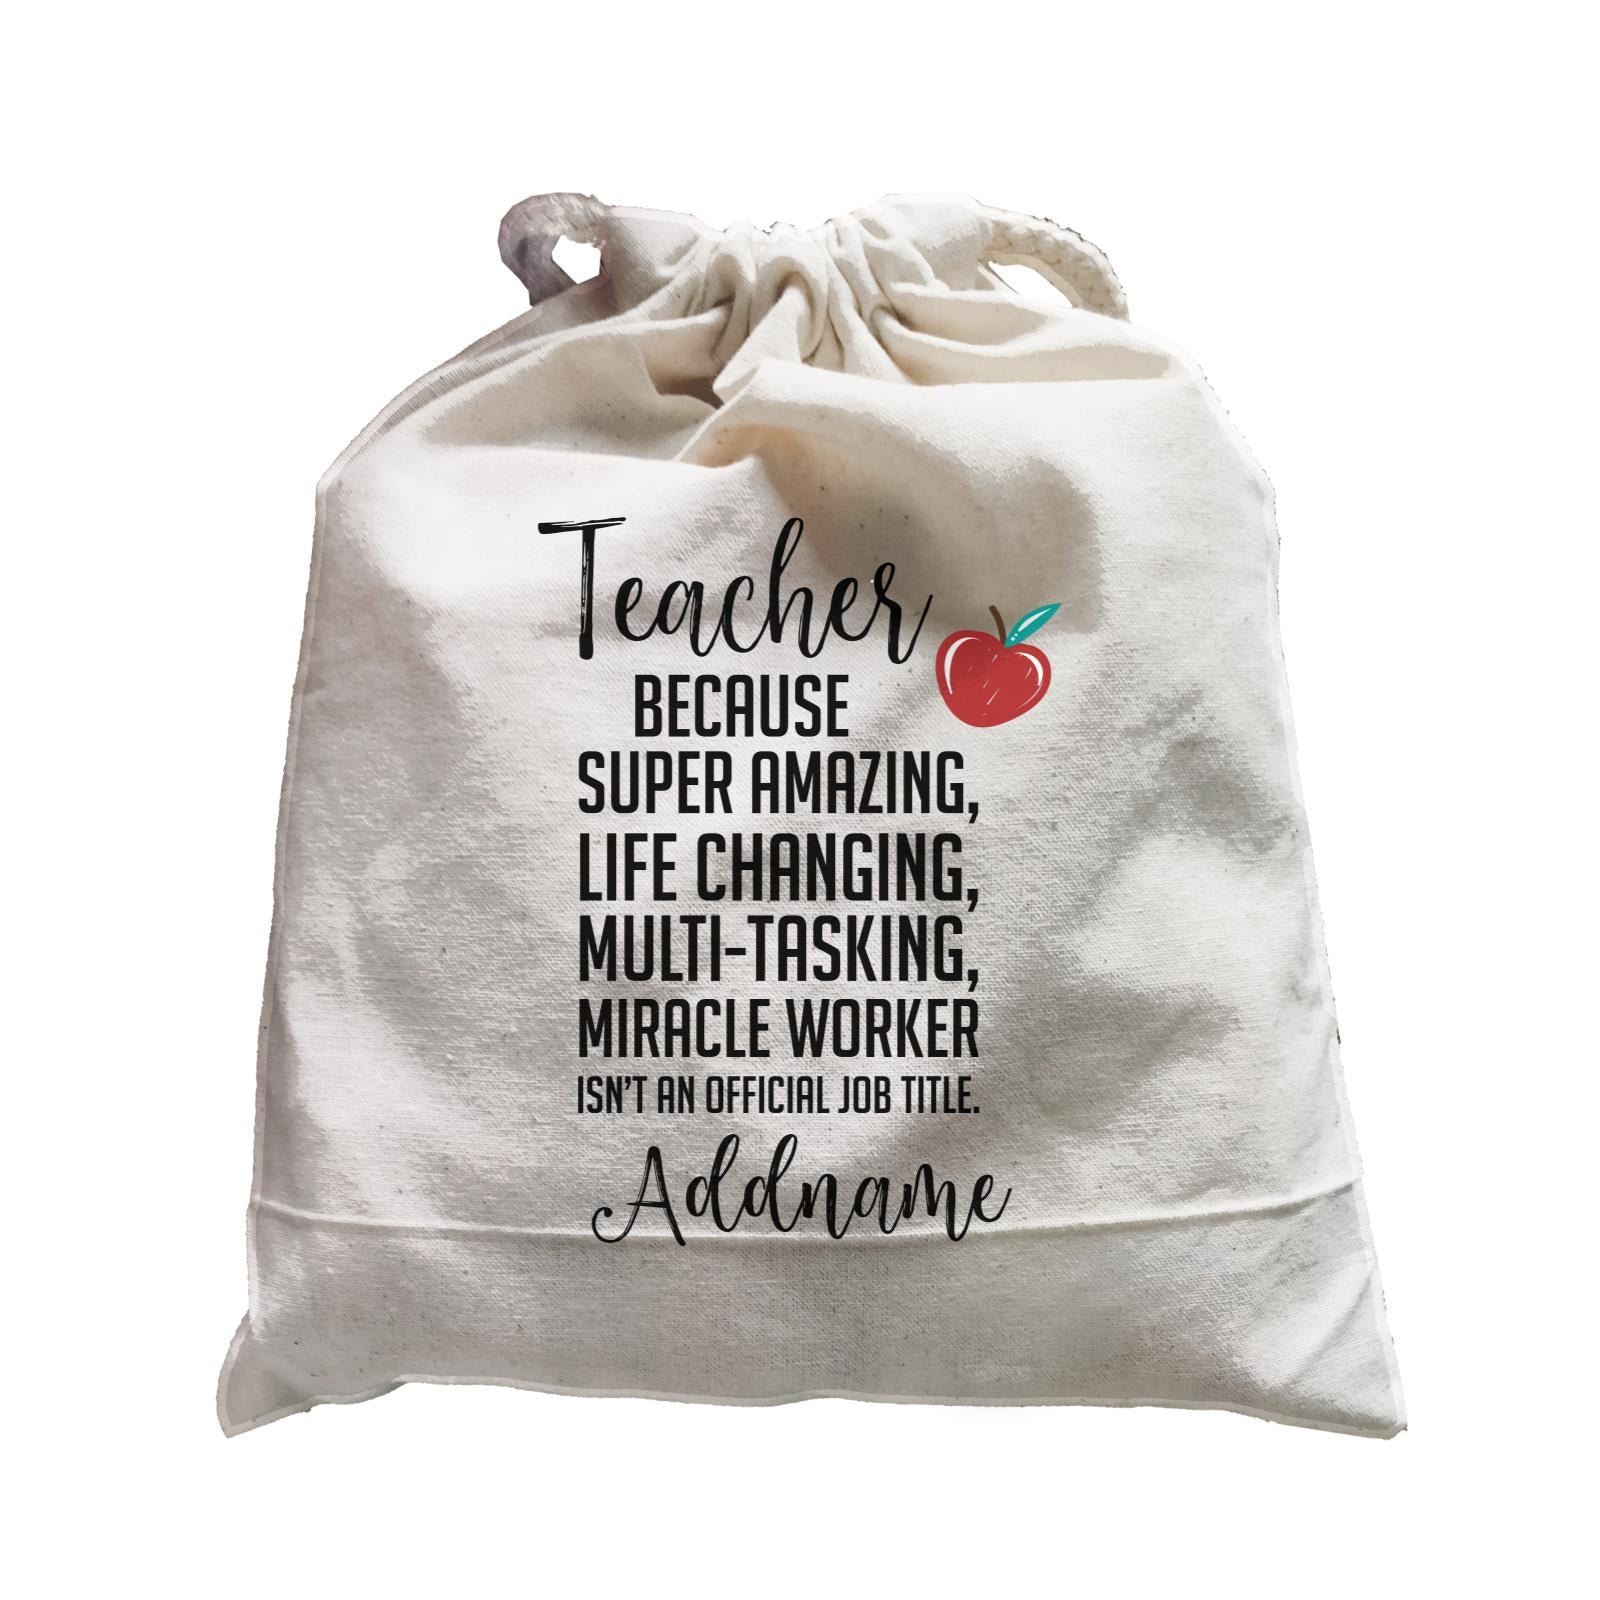 Teacher Quotes Teacher Miracle Worker Isn't An Official Job Title Addname Satchel